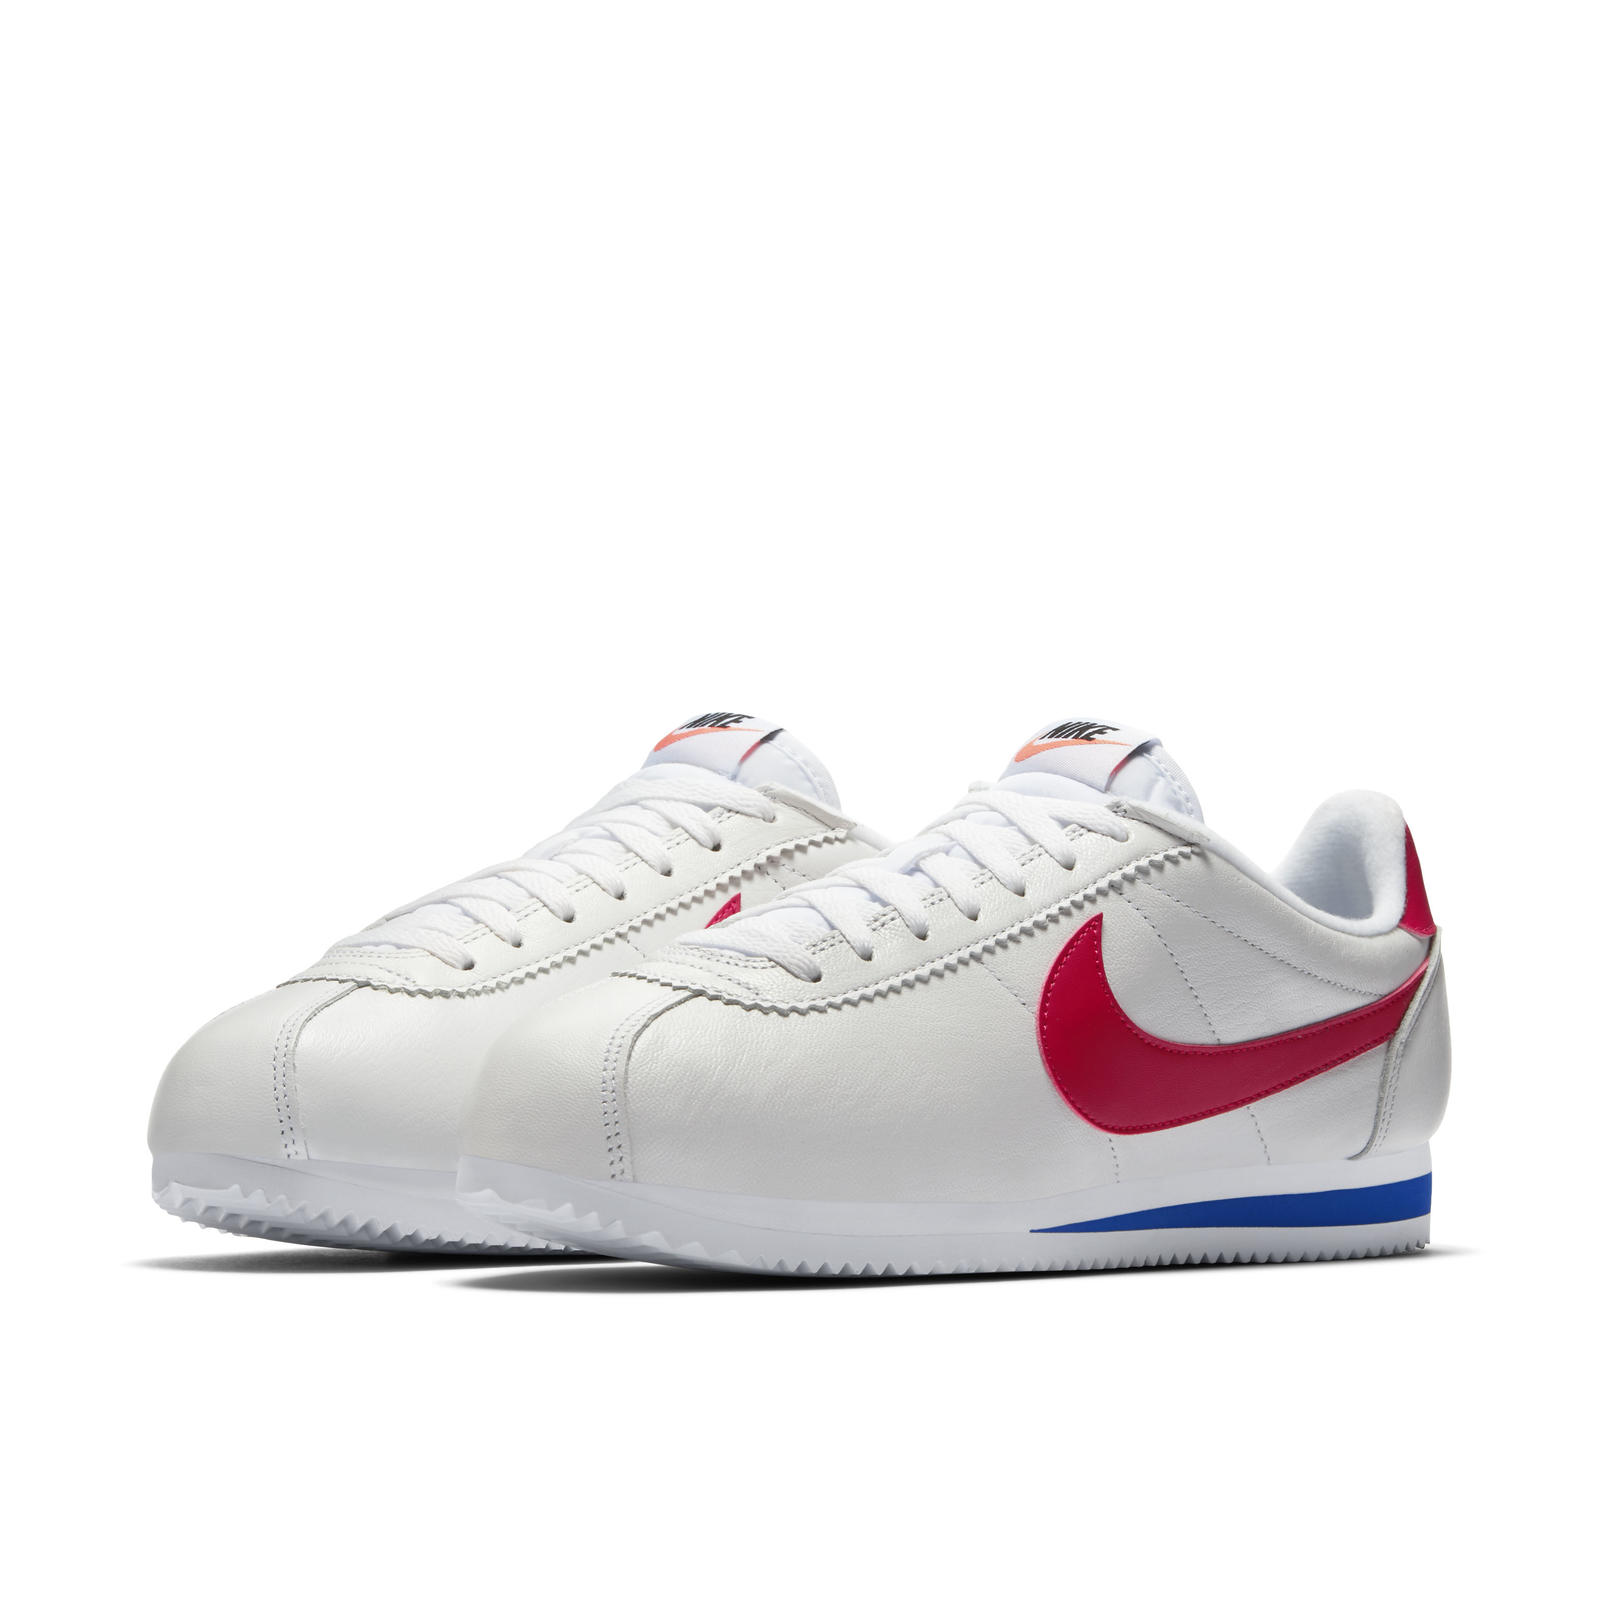 Celebrating 45 Years of Nike Cortez in Sport, Style and Culture